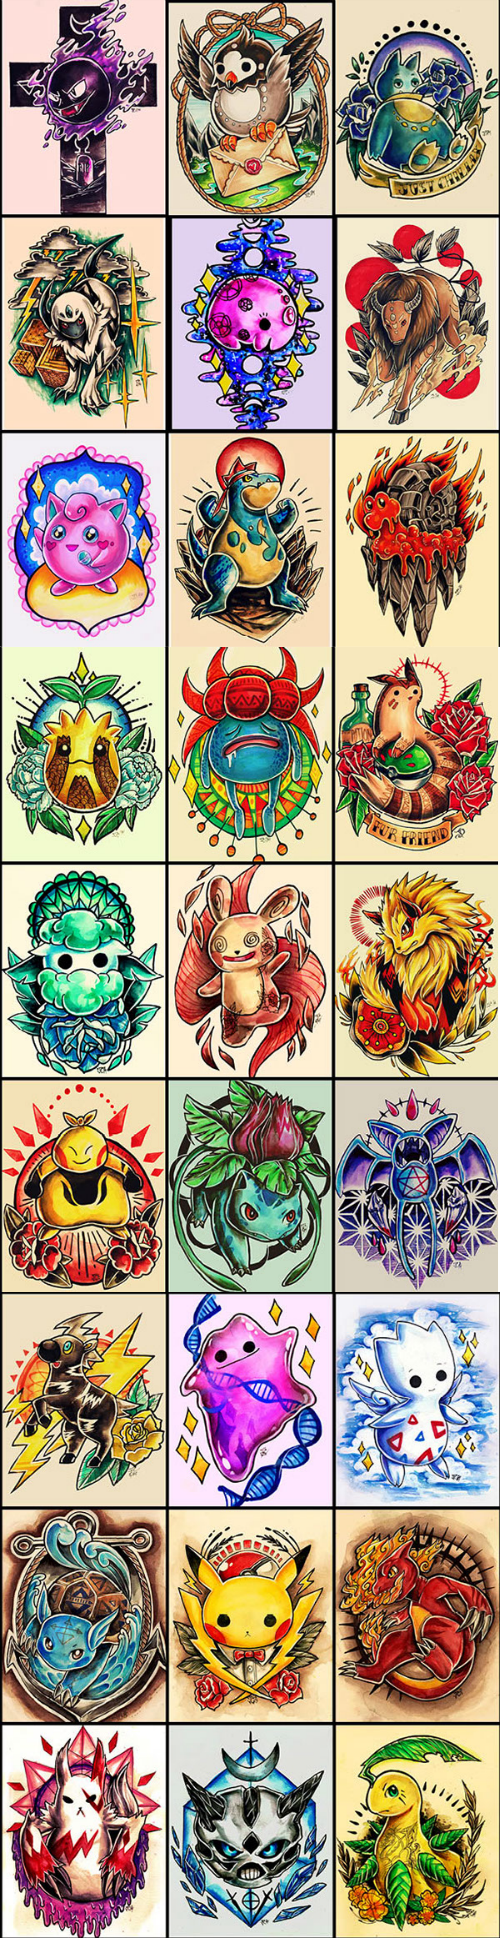 Pokémon Fan Art tattoos - 8370513664